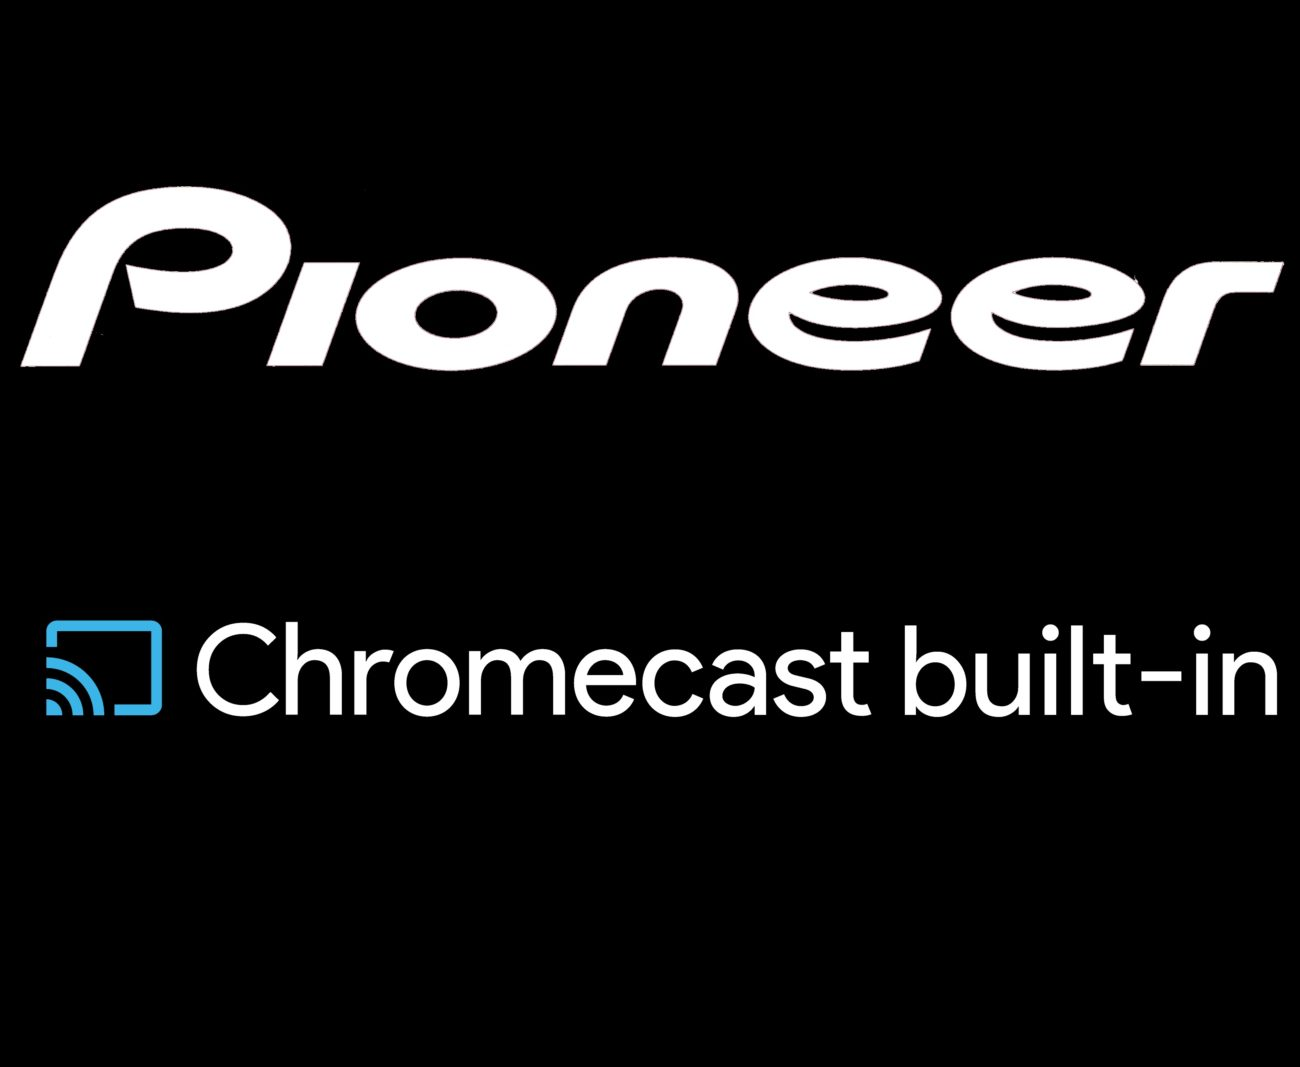 Pioneer chromecast built